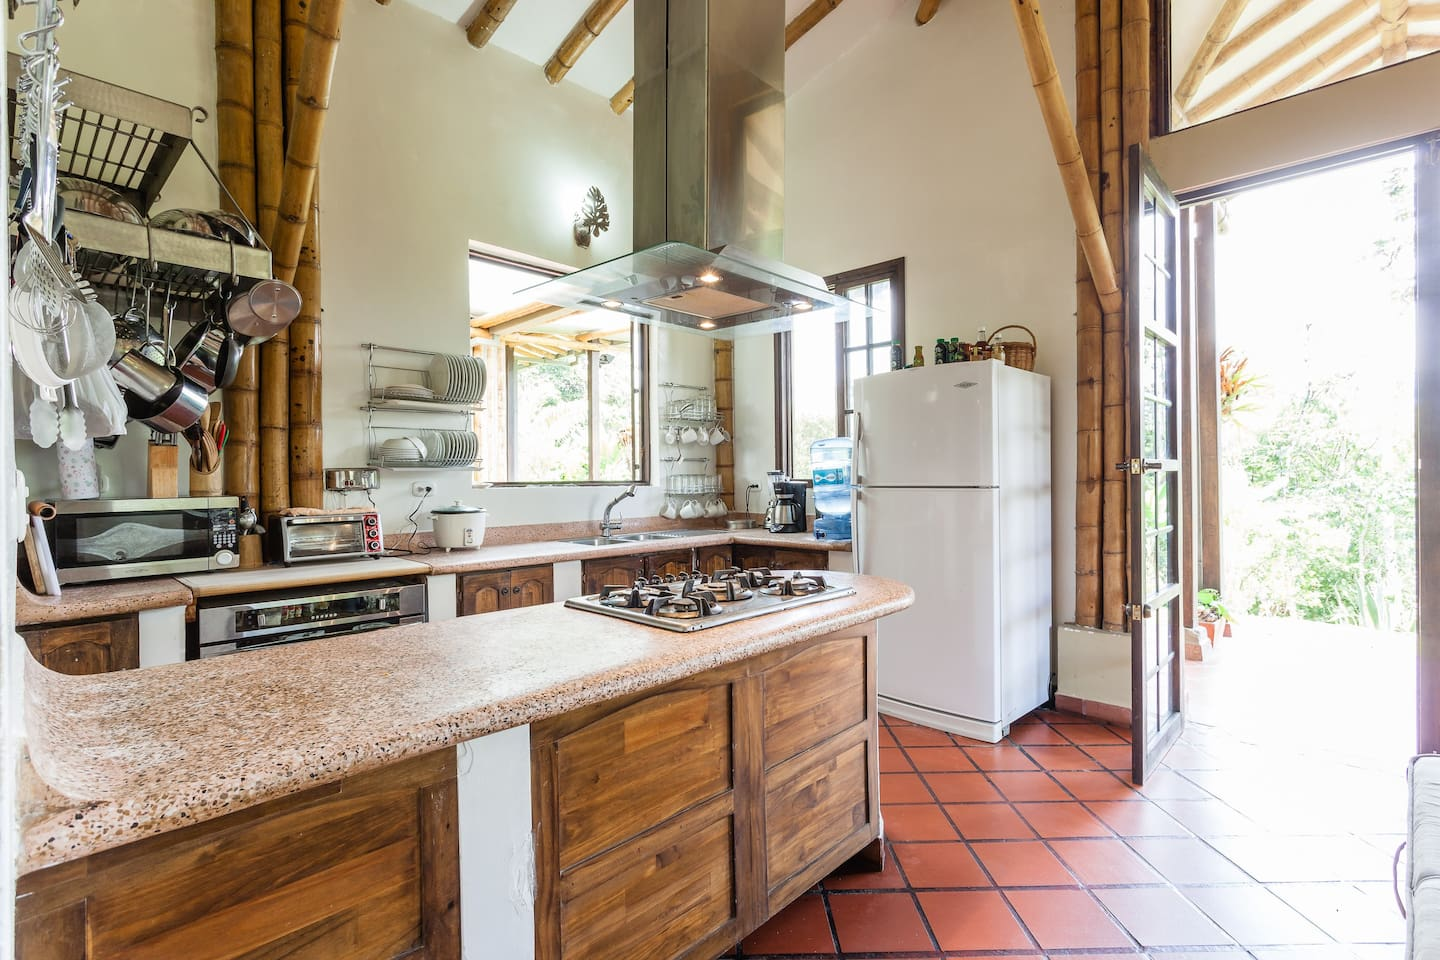 Kitchen of main house where breakfast is served